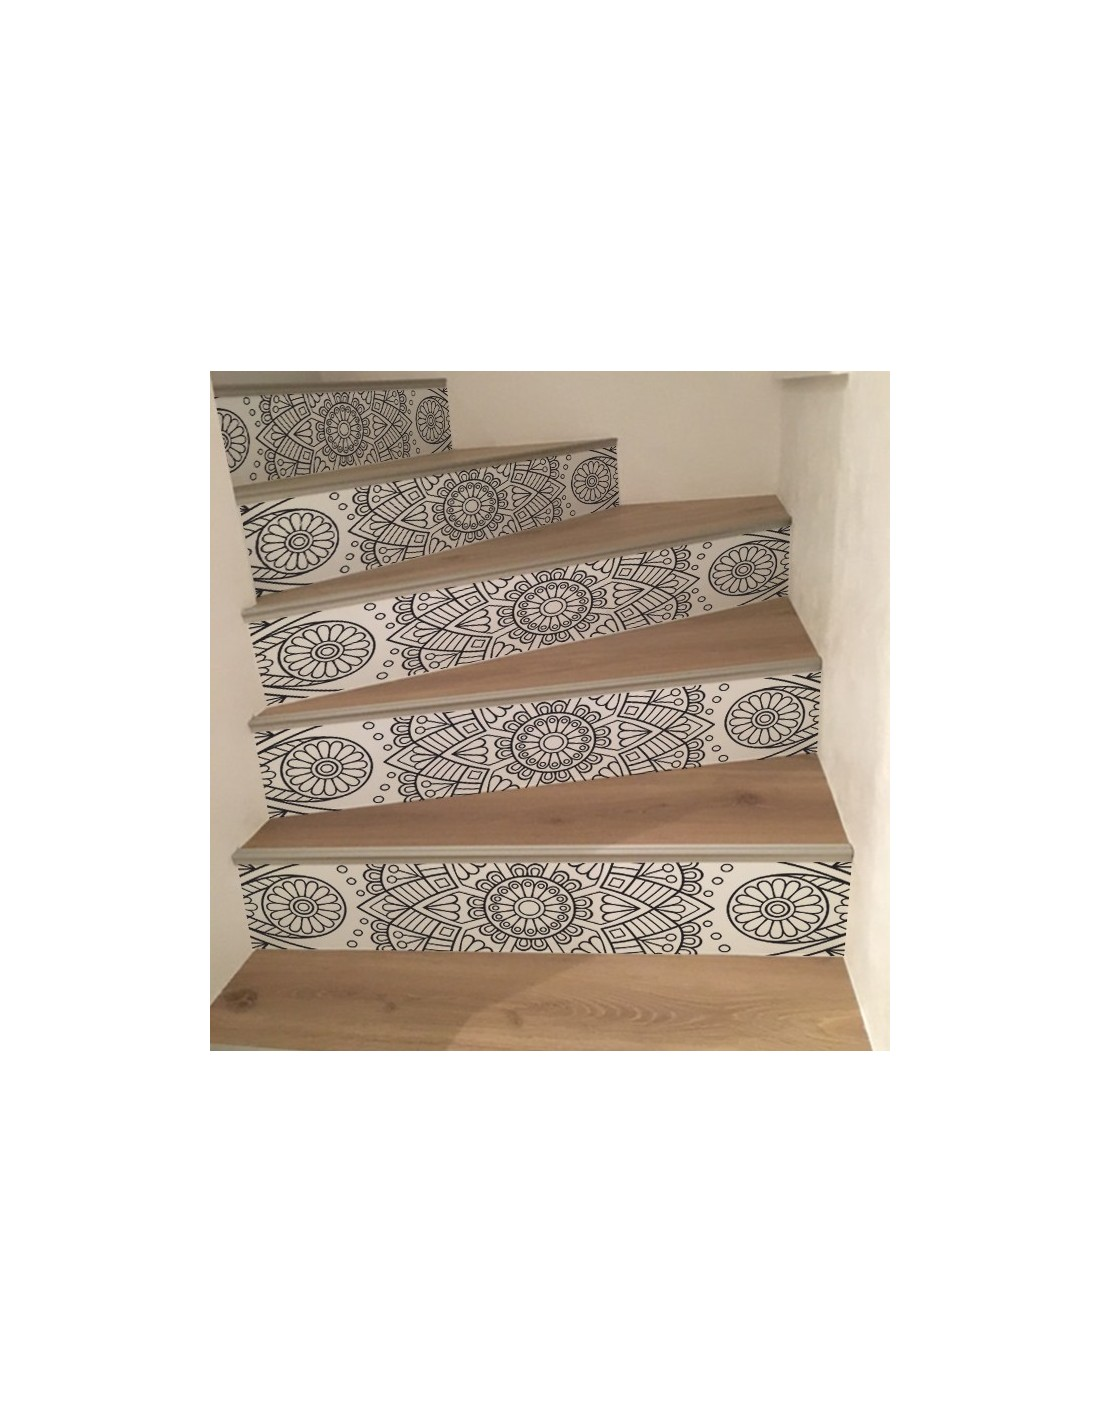 stickers d 39 escalier d co orientale stickers contremarche escalier. Black Bedroom Furniture Sets. Home Design Ideas